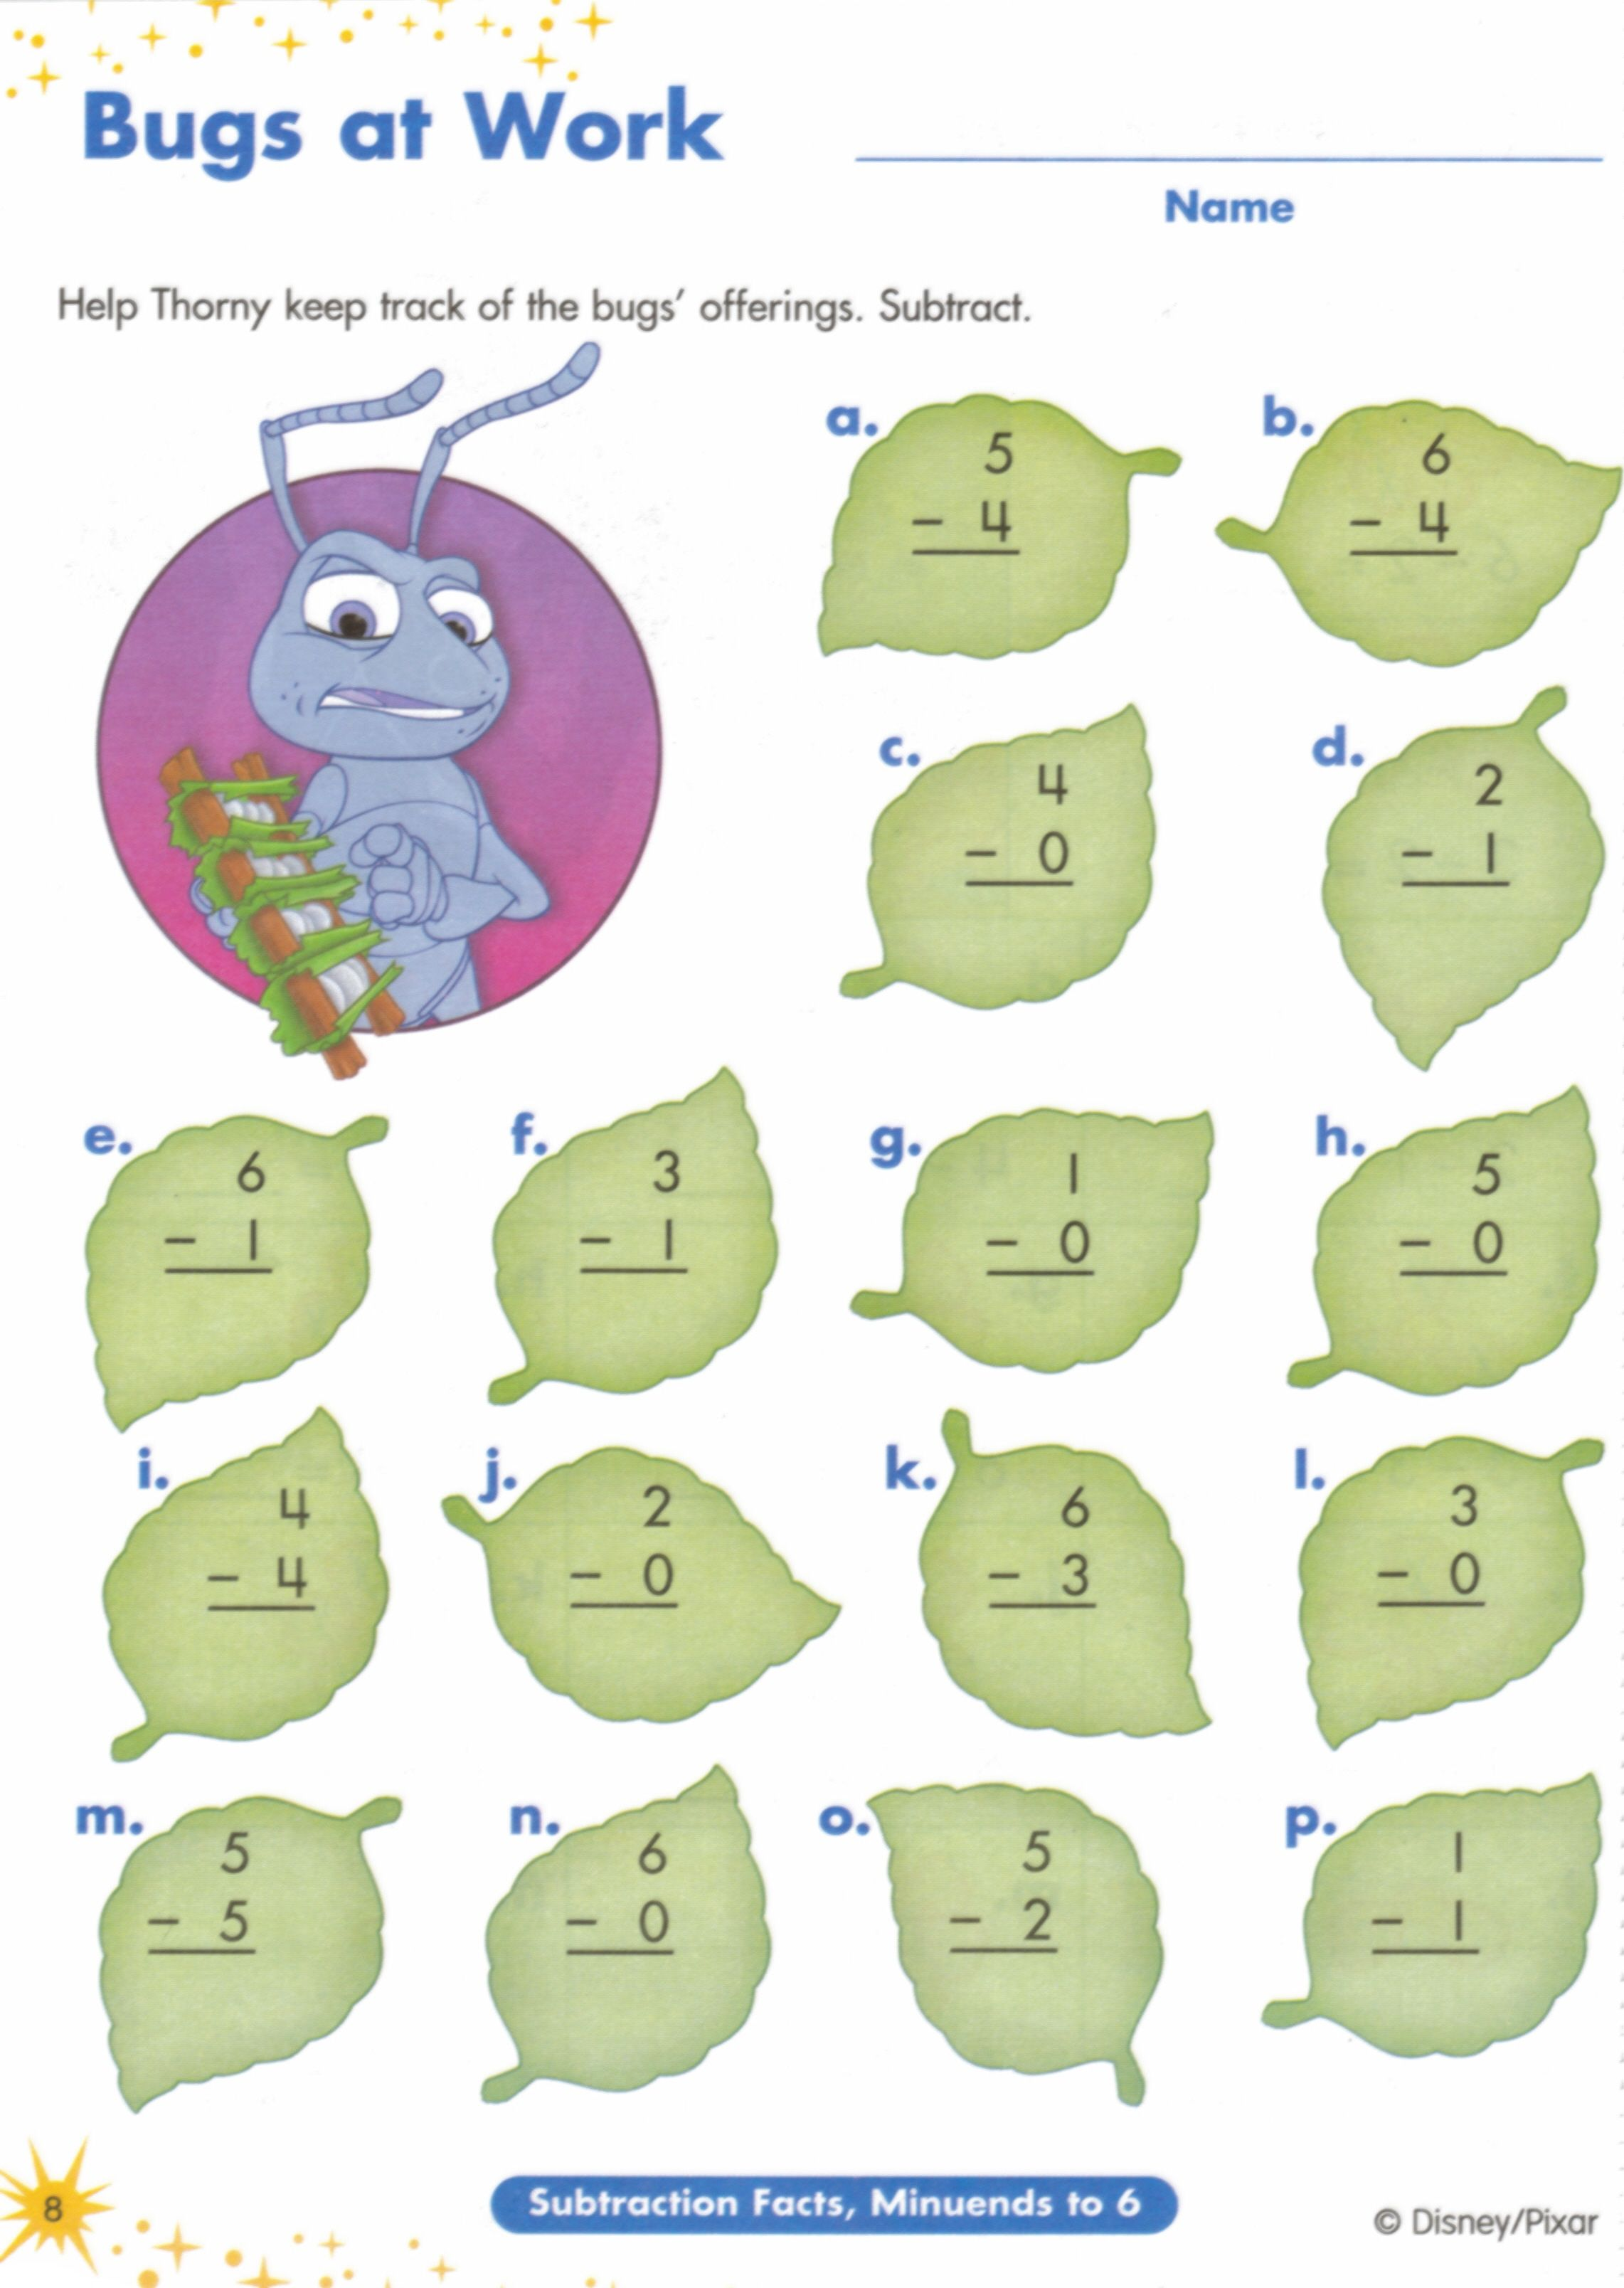 Proatmealus  Unusual  Images About Worksheets On Pinterest  Fun Facts For Kids  With Lovable  Images About Worksheets On Pinterest  Fun Facts For Kids Earth Day Worksheets And Jungles With Enchanting Significant Figures Worksheet Chemistry Also Worksheet  Combustion Reactions In Addition Letter Writing Worksheets And Codominance Worksheet As Well As Atomic Structure Review Worksheet Answers Additionally Main Idea Worksheets Nd Grade From Pinterestcom With Proatmealus  Lovable  Images About Worksheets On Pinterest  Fun Facts For Kids  With Enchanting  Images About Worksheets On Pinterest  Fun Facts For Kids Earth Day Worksheets And Jungles And Unusual Significant Figures Worksheet Chemistry Also Worksheet  Combustion Reactions In Addition Letter Writing Worksheets From Pinterestcom